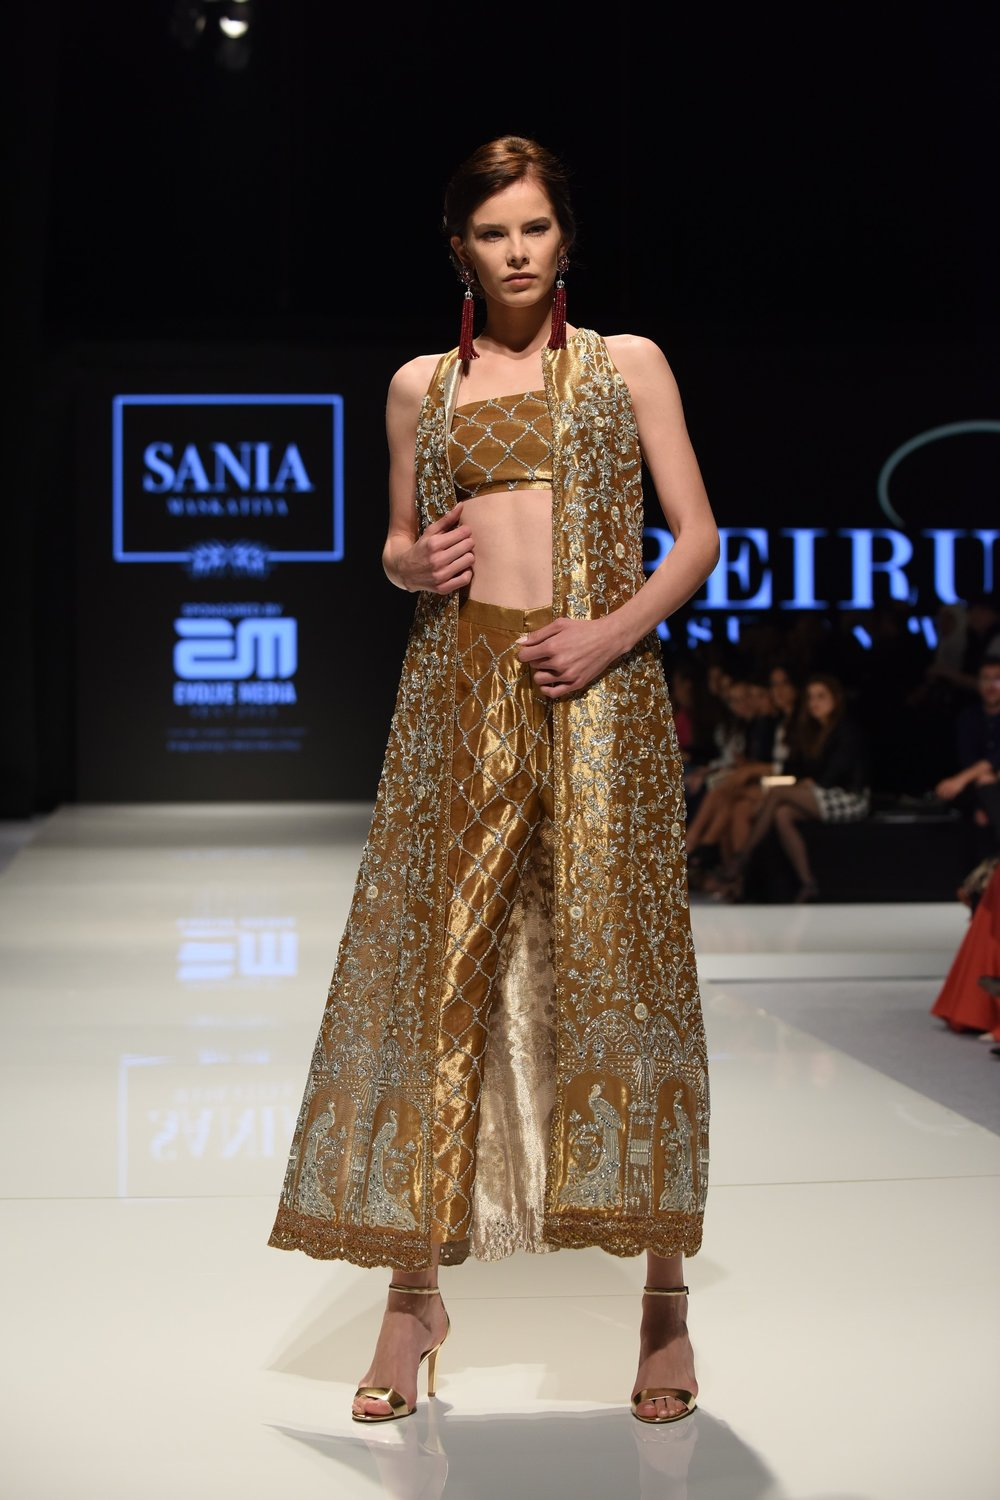 Sania-Maskatiya-Beirut-Fashion-Week-2017-F-17.jpg